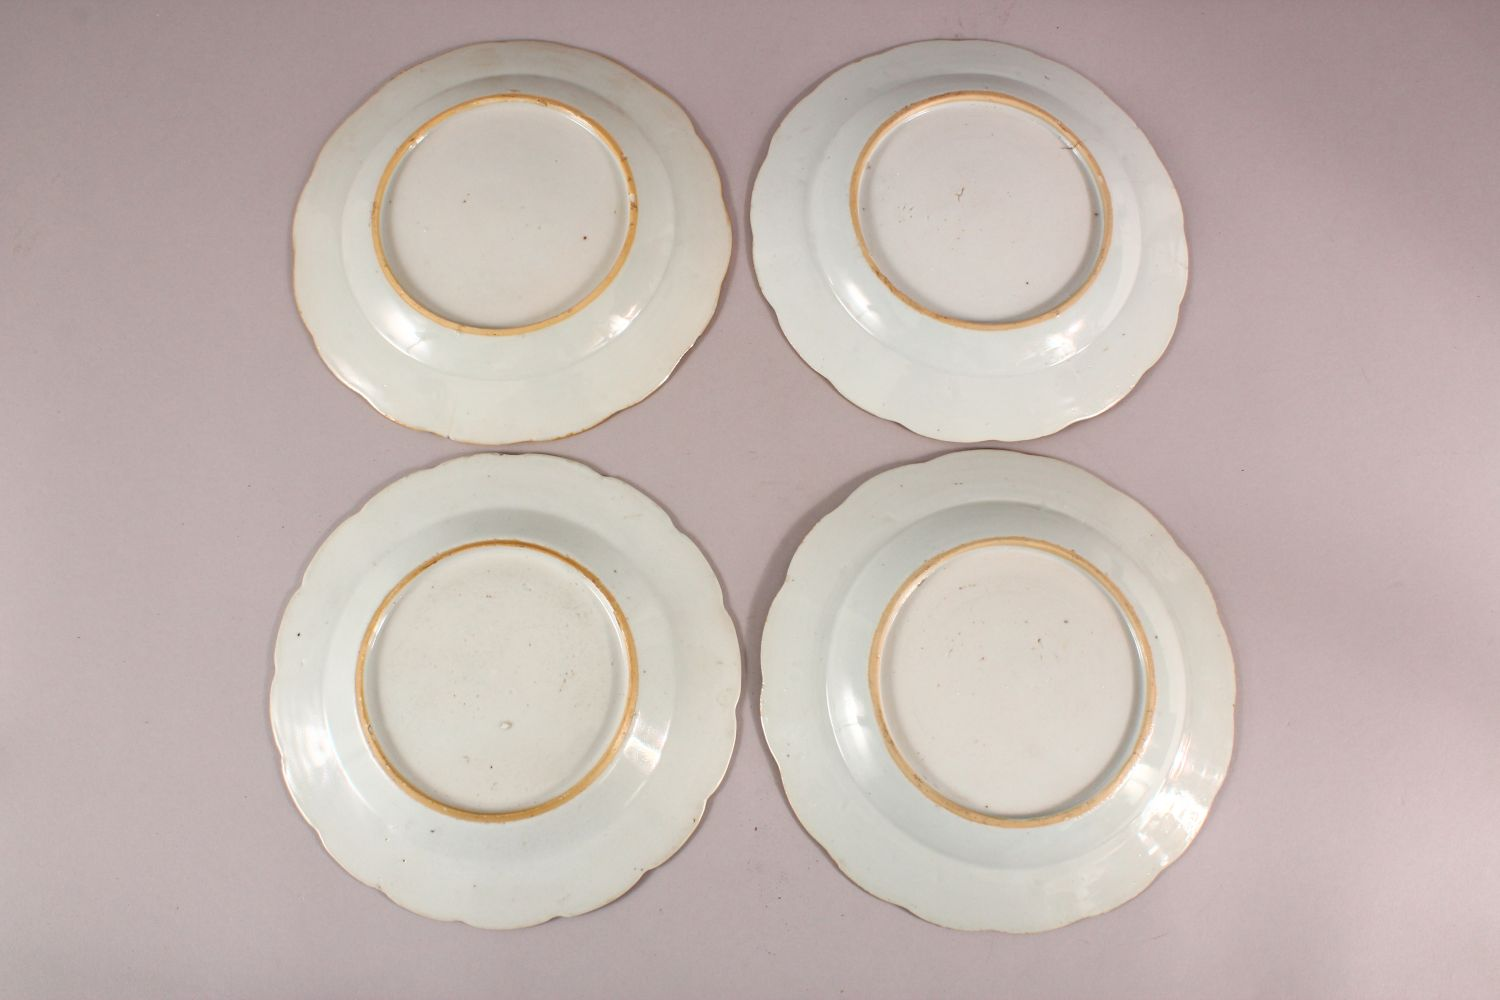 A SET OF FOUR 18TH / 19TH CENTURY CHINESE FAMILLE ROSE PLATES, with floral decoration, 23cm - Image 6 of 6